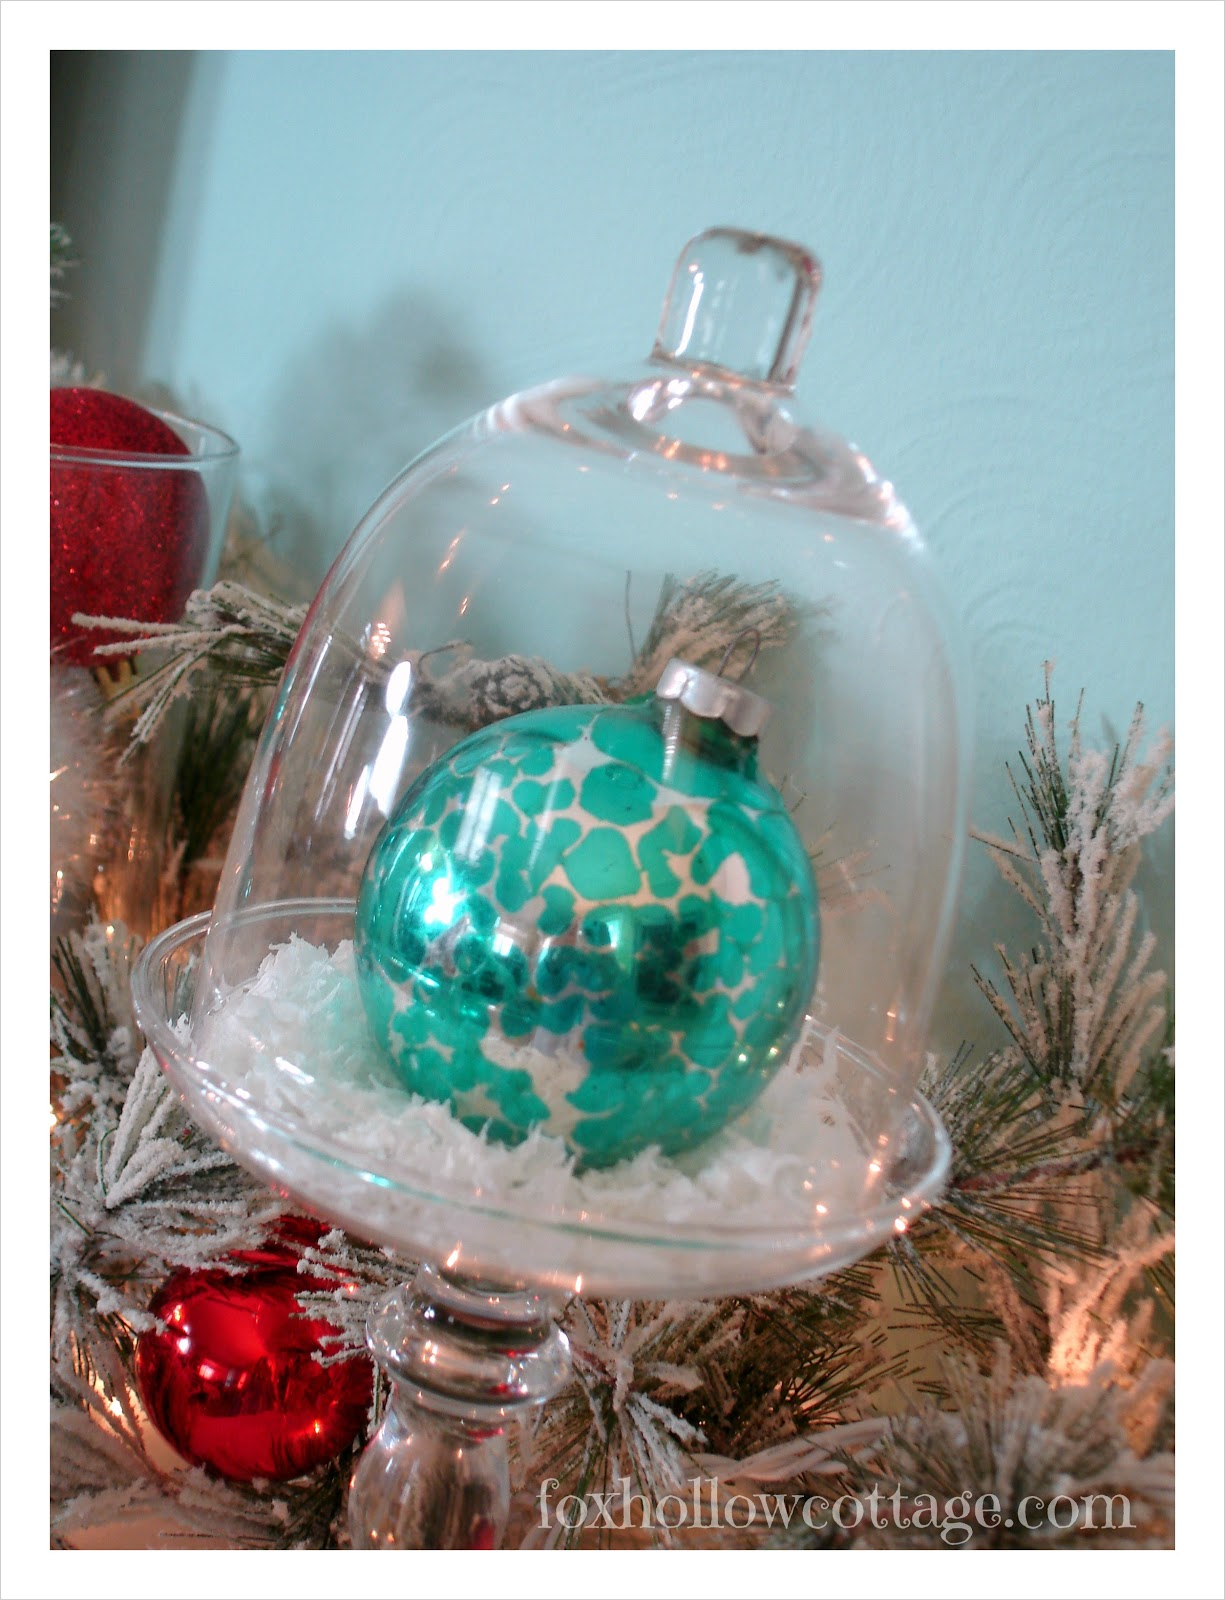 10 Quick Ideas For Decorating With Christmas Ornaments Fox Hollow Cottage